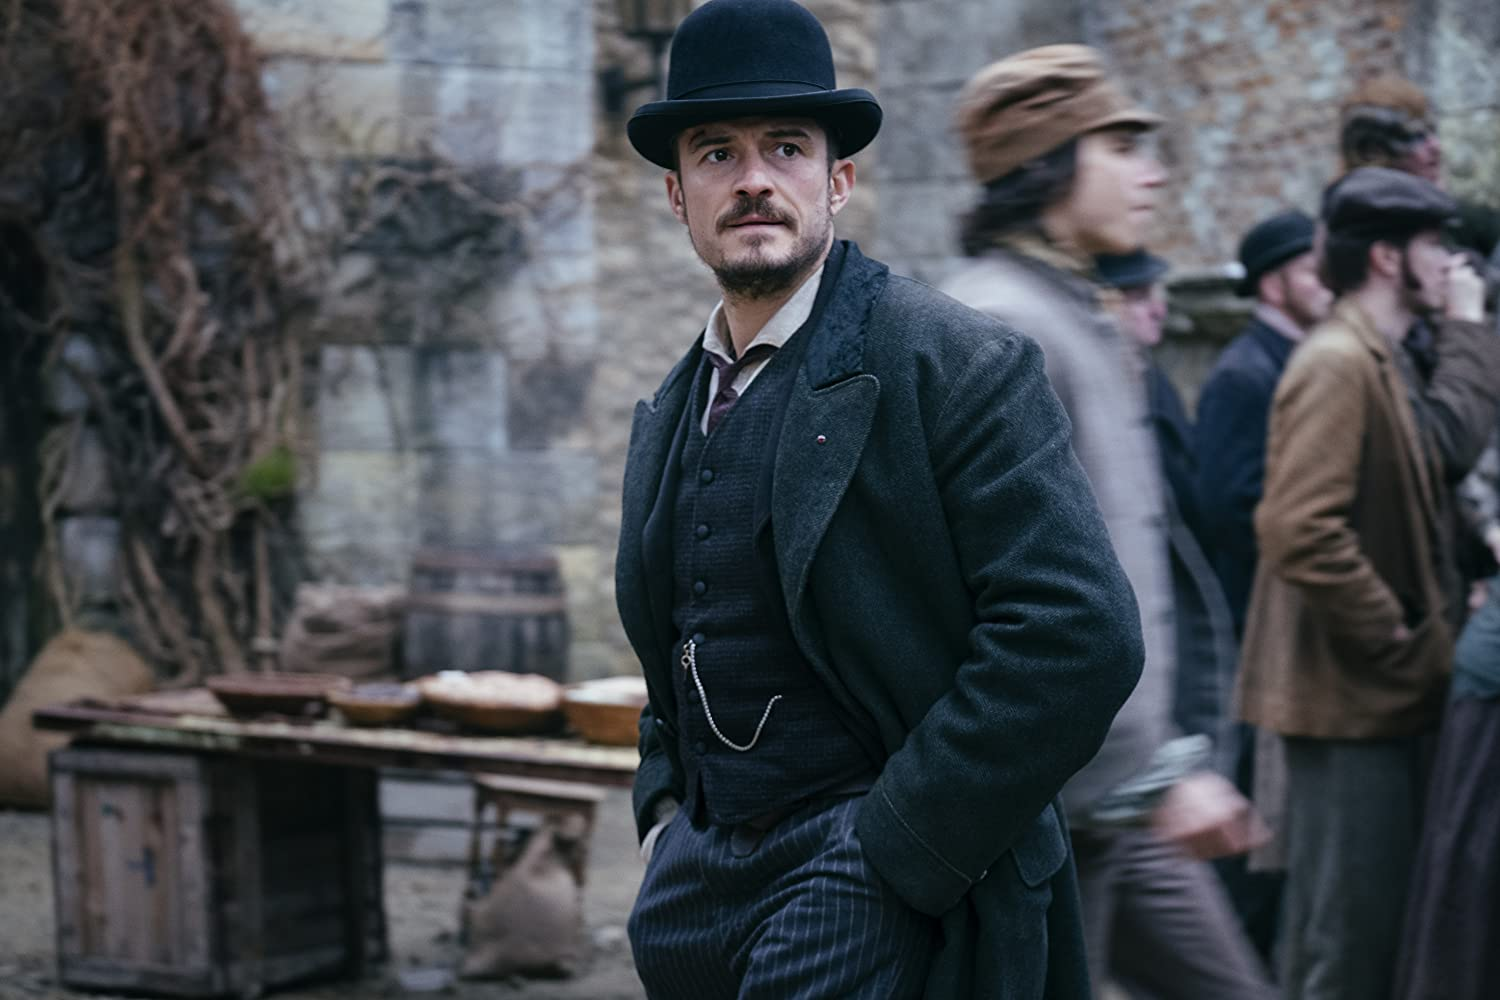 Orlando Bloom in Carnival Row (2019)